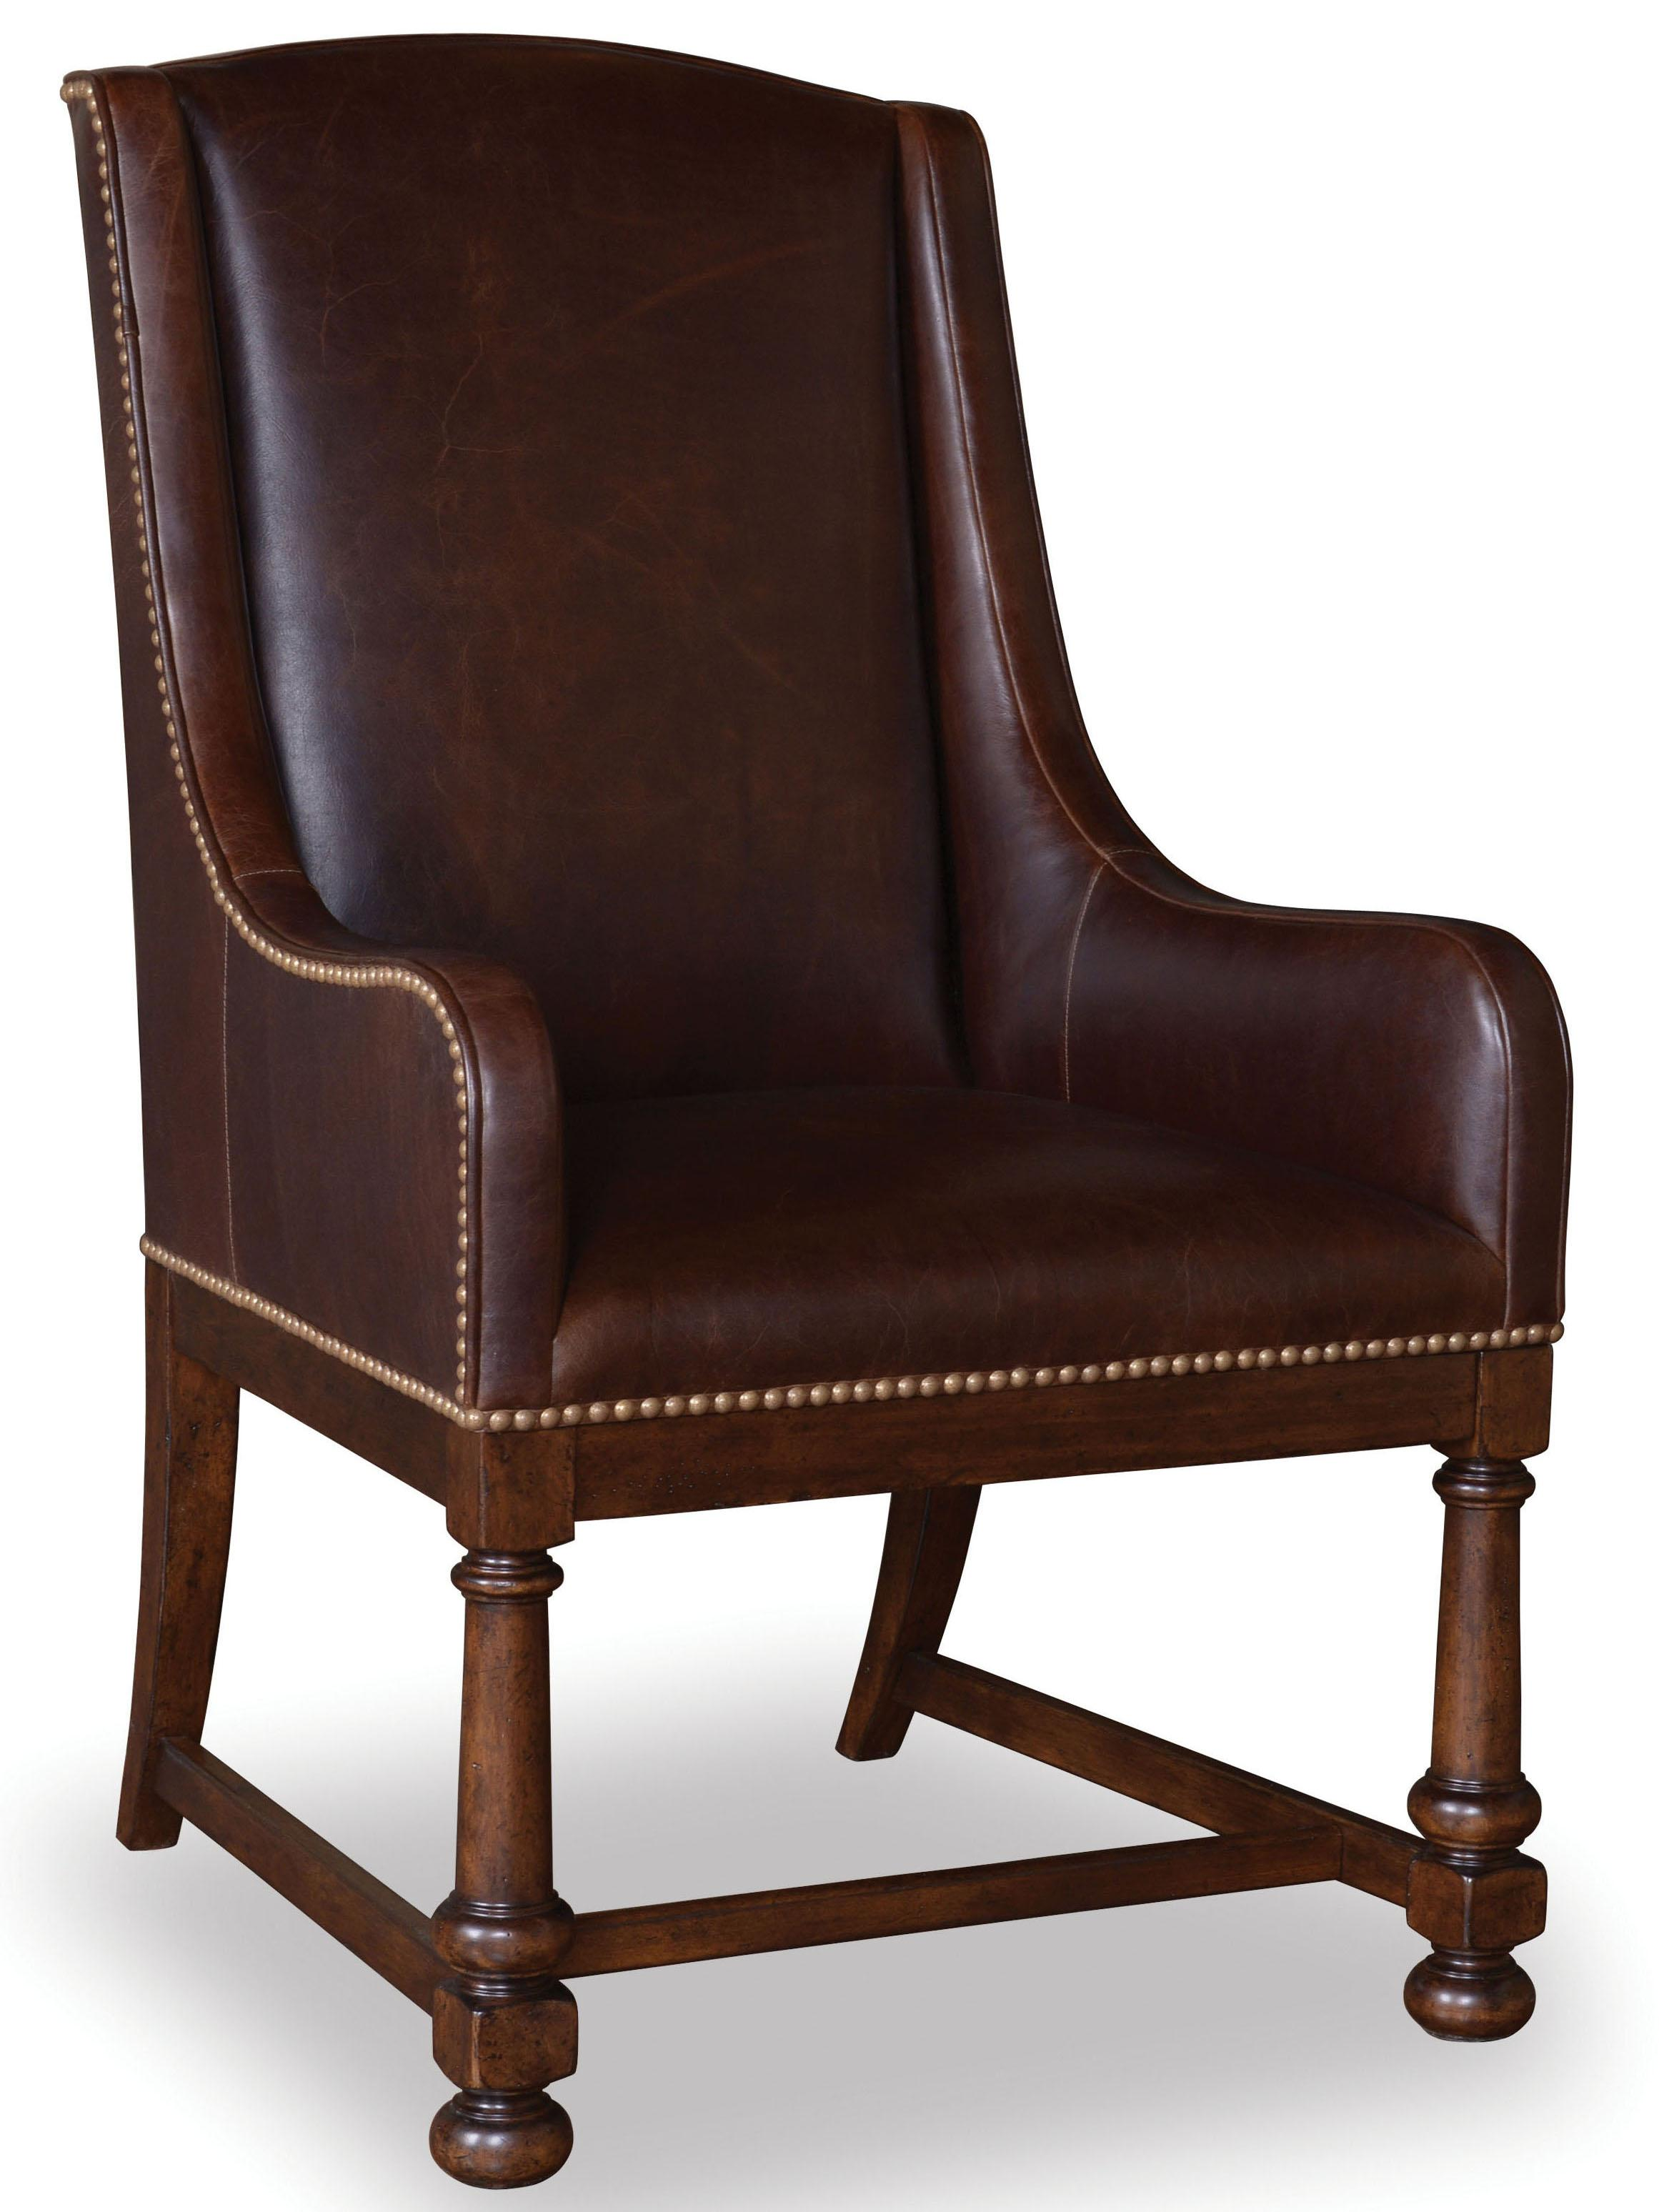 Belfort Signature Belvedere Leather Arm Chair - Item Number: 205200-2304